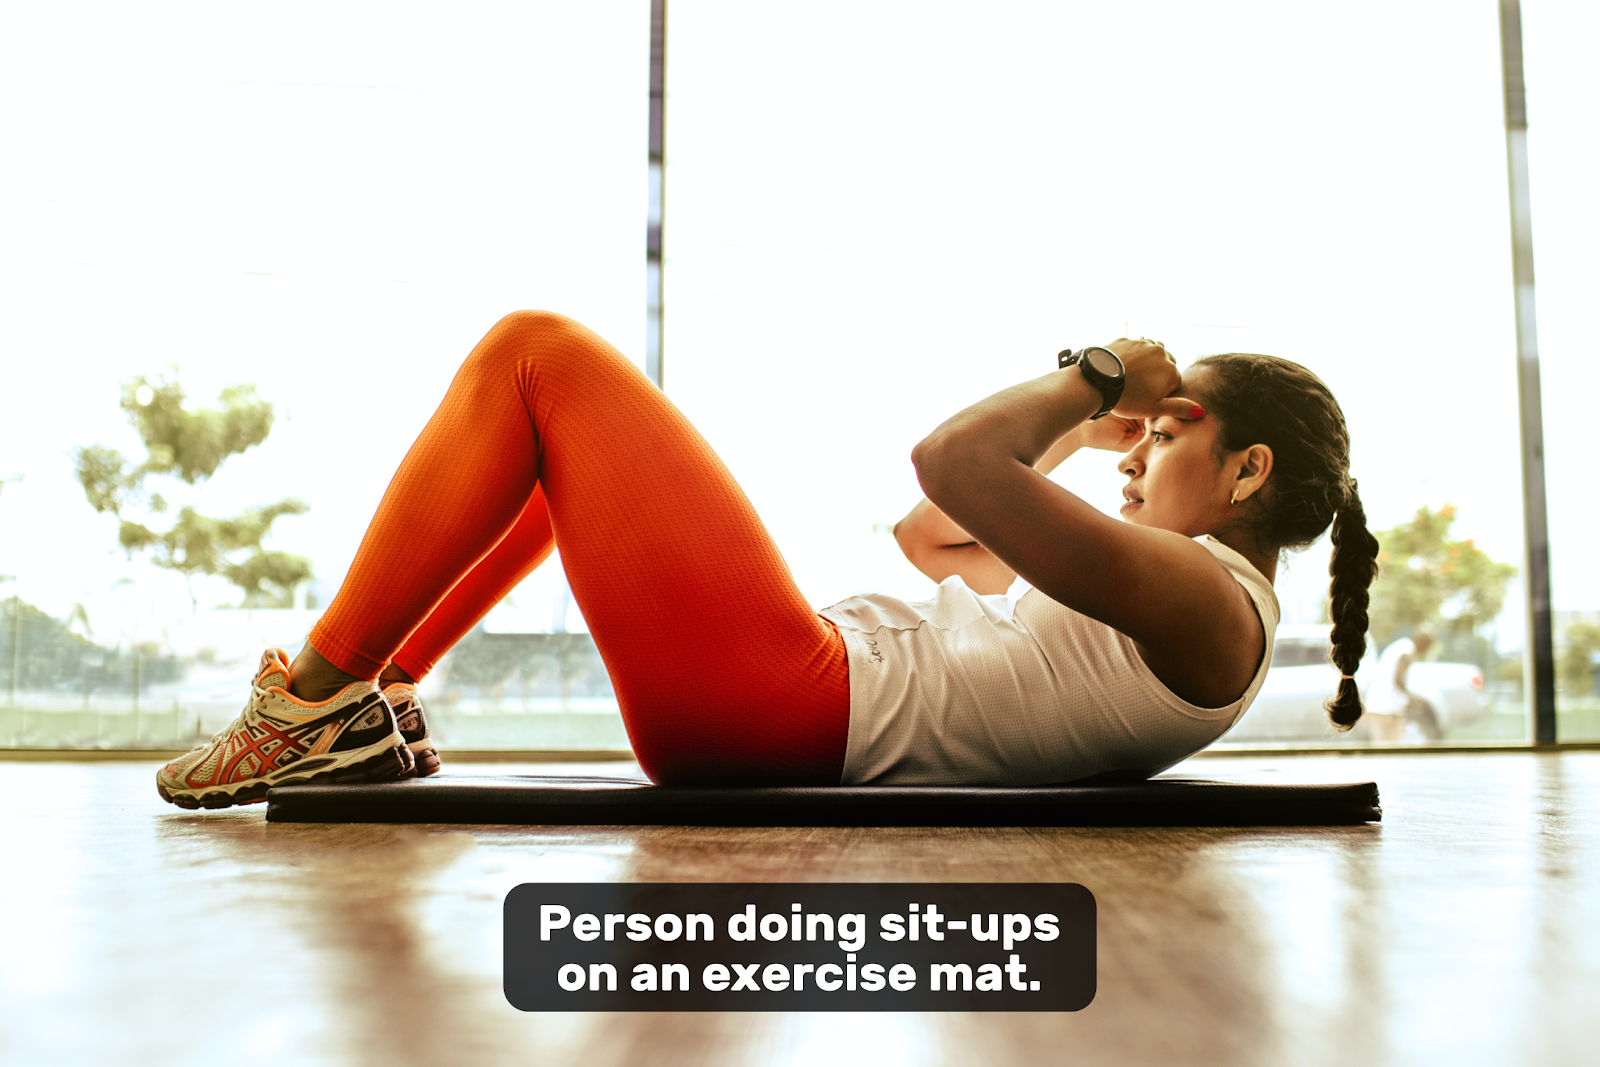 Activity based description subtitle for over a person doing sit-ups that says 'Person doing sit-ups on an exercise mat'